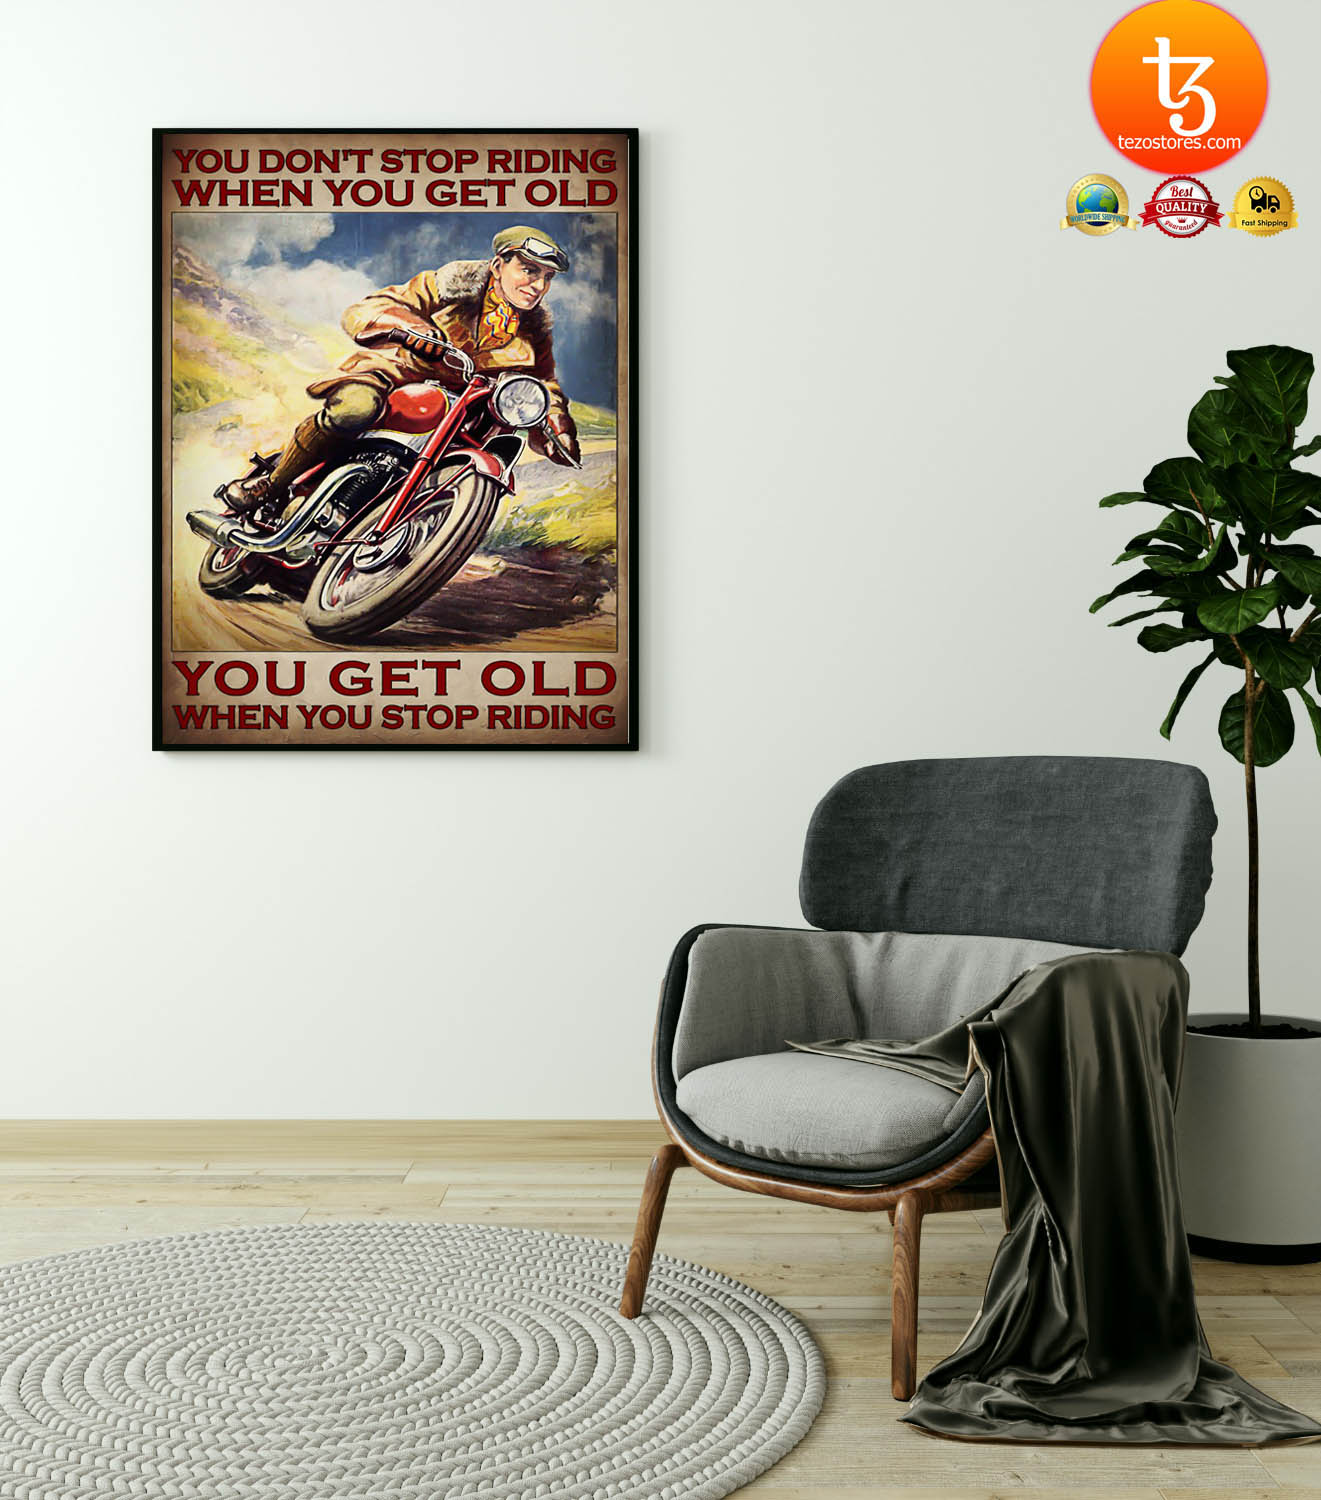 Man You don't stop riding when you get old poster 23